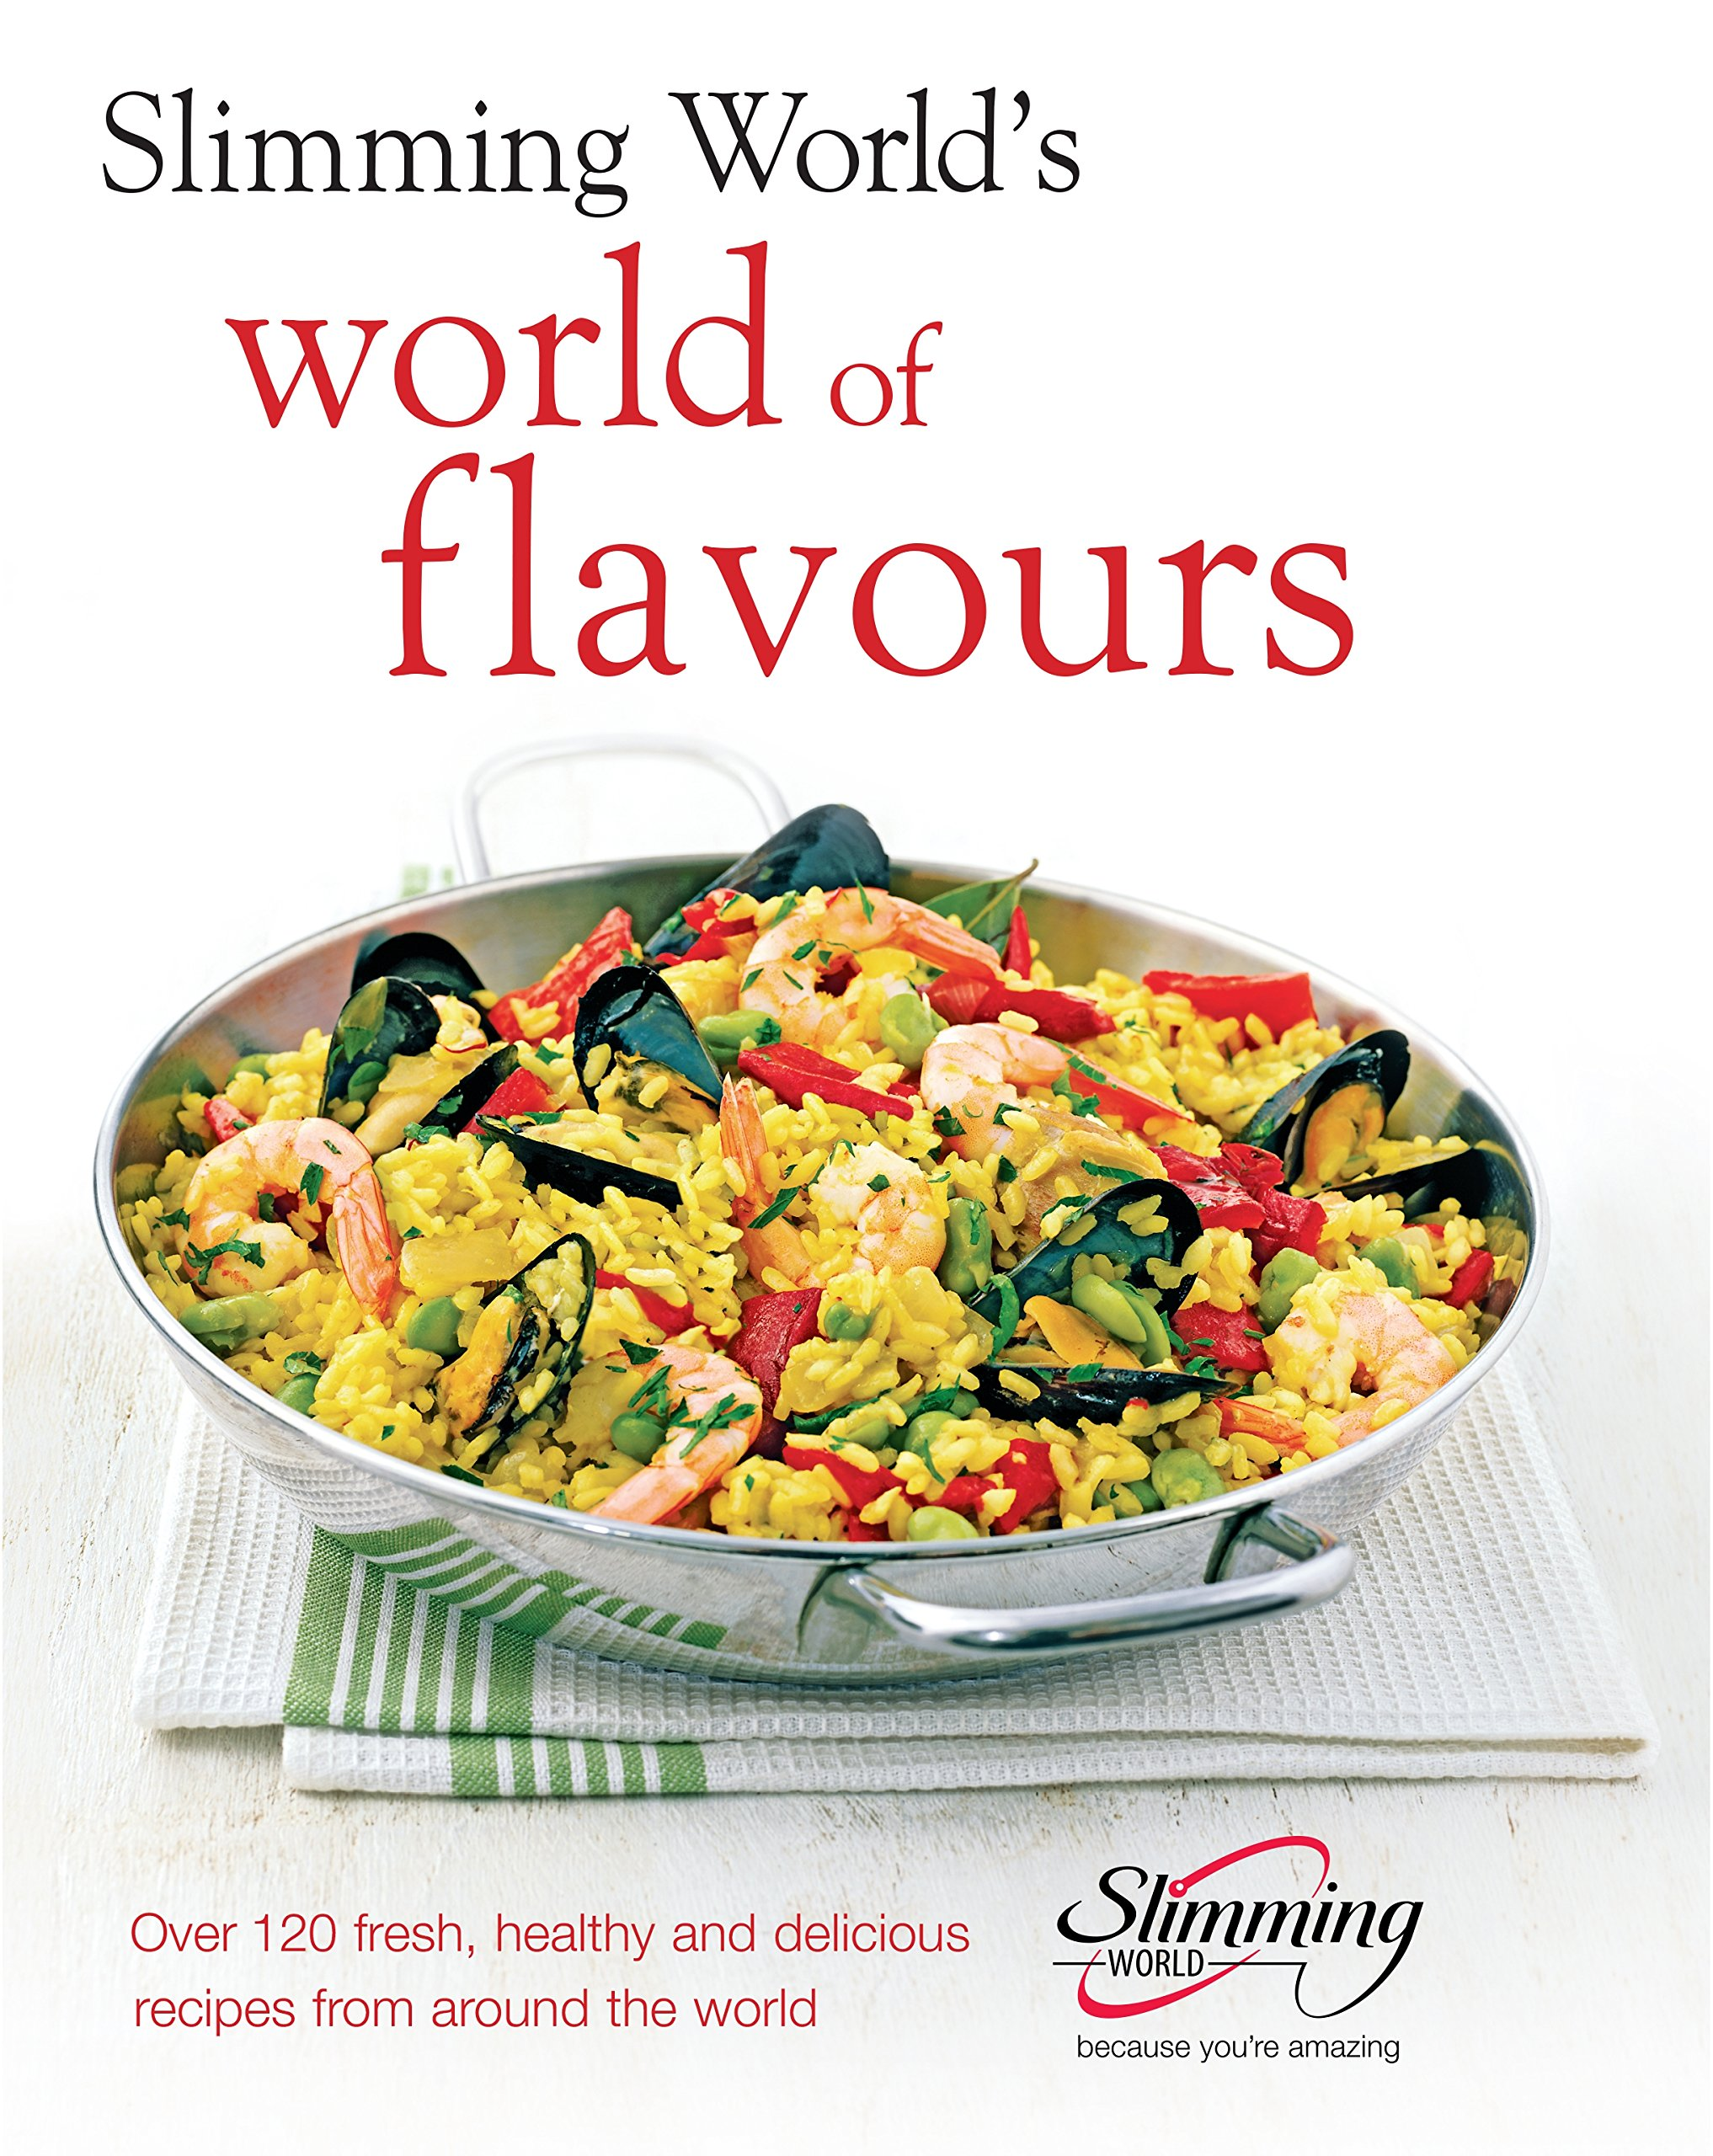 Slimming World Flavours product image